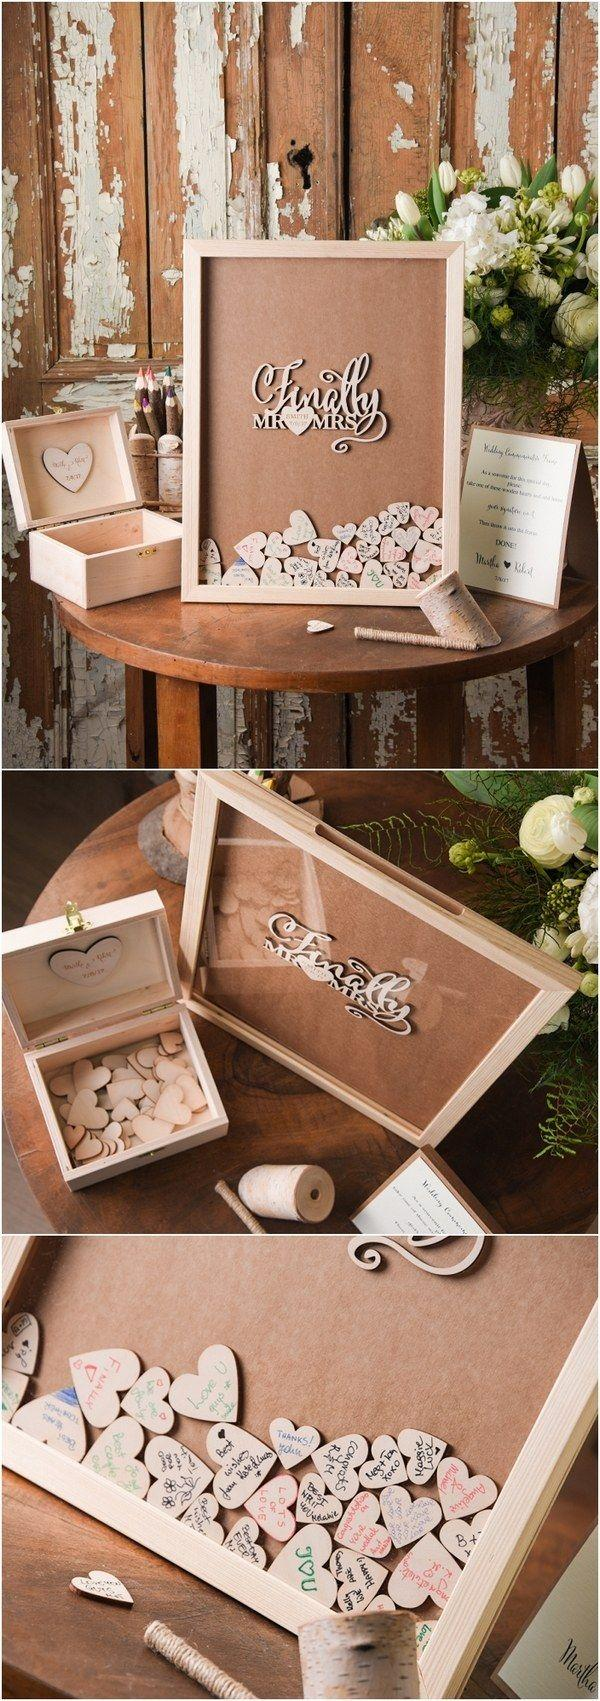 Mariage - Top 12 Rustic Wedding Guest Books & Botanical Wedding Invitations